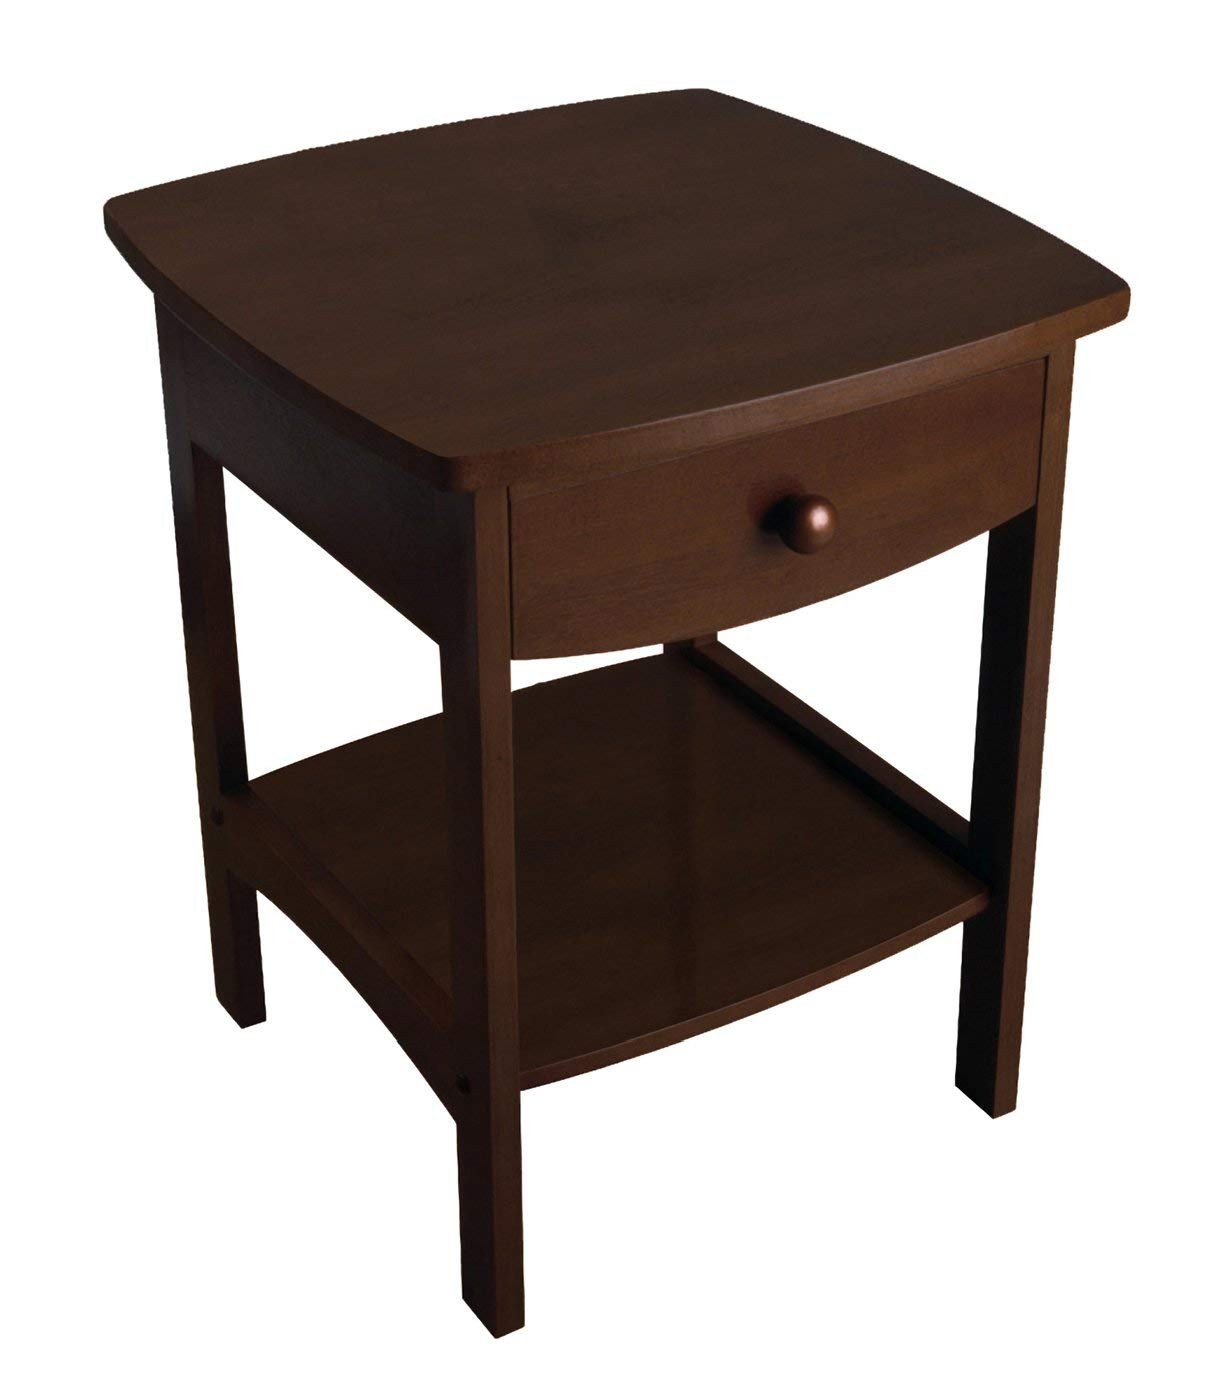 winsome wood claire accent table walnut kitchen with usb port dining room divider glass cube side leg nightstand and metal end retro furniture ers homes rustic cocktail chestnut